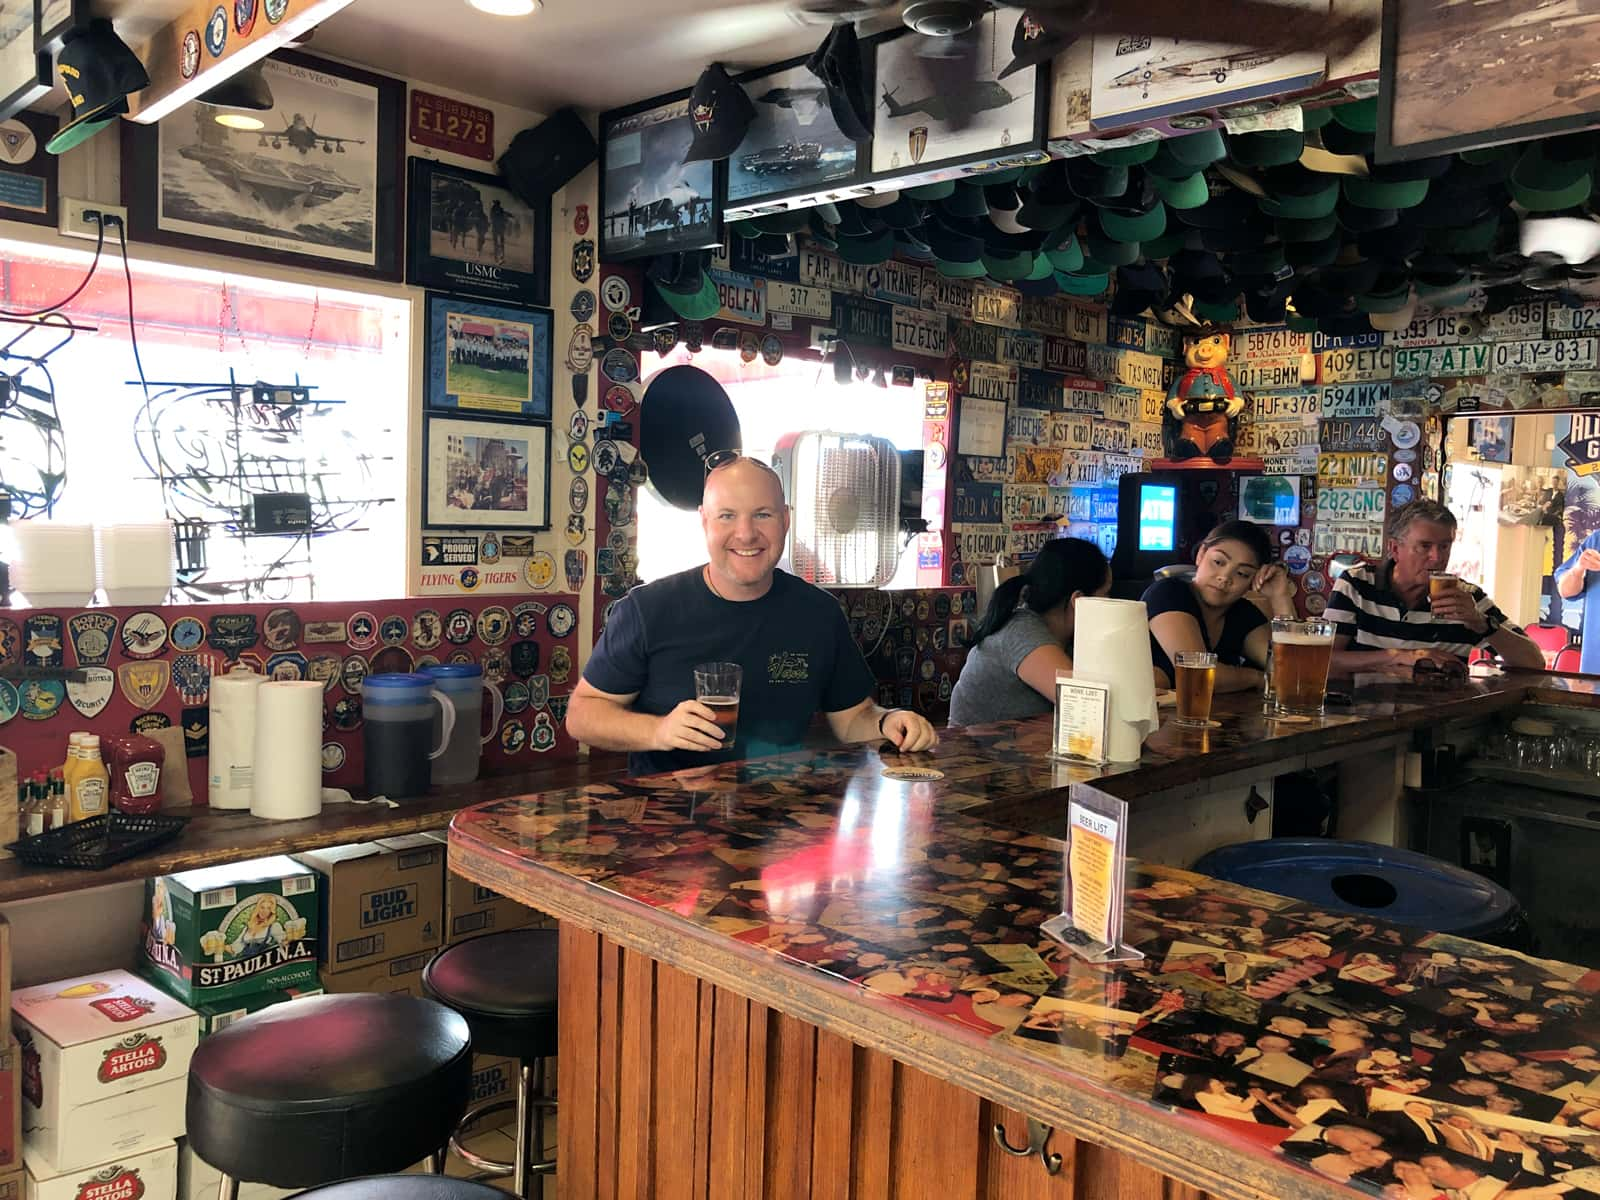 Dave at Kansas City Barbeque (the bar from Top Gun) in San Diego, CA